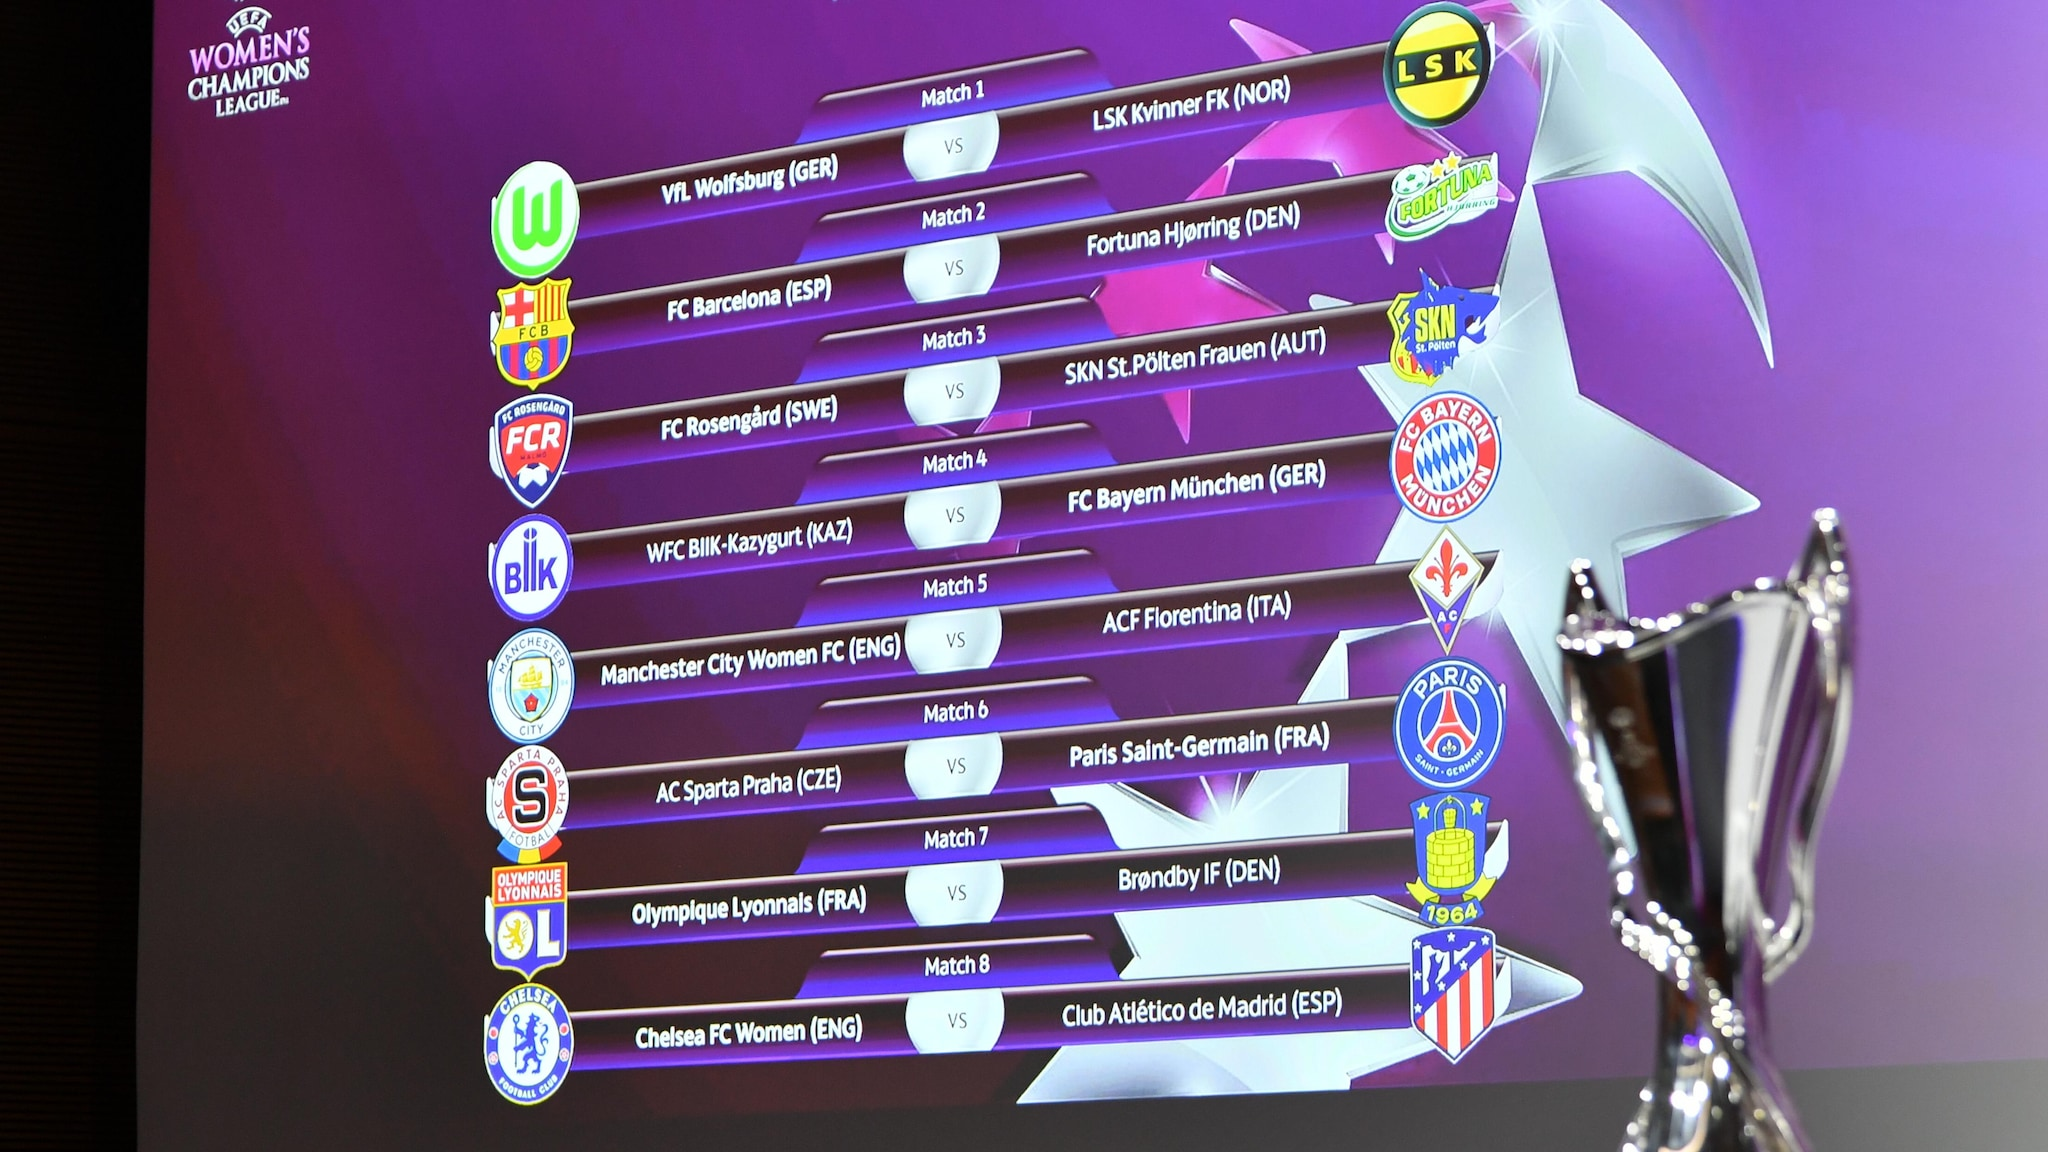 Women's Champions League round of 16 draw made